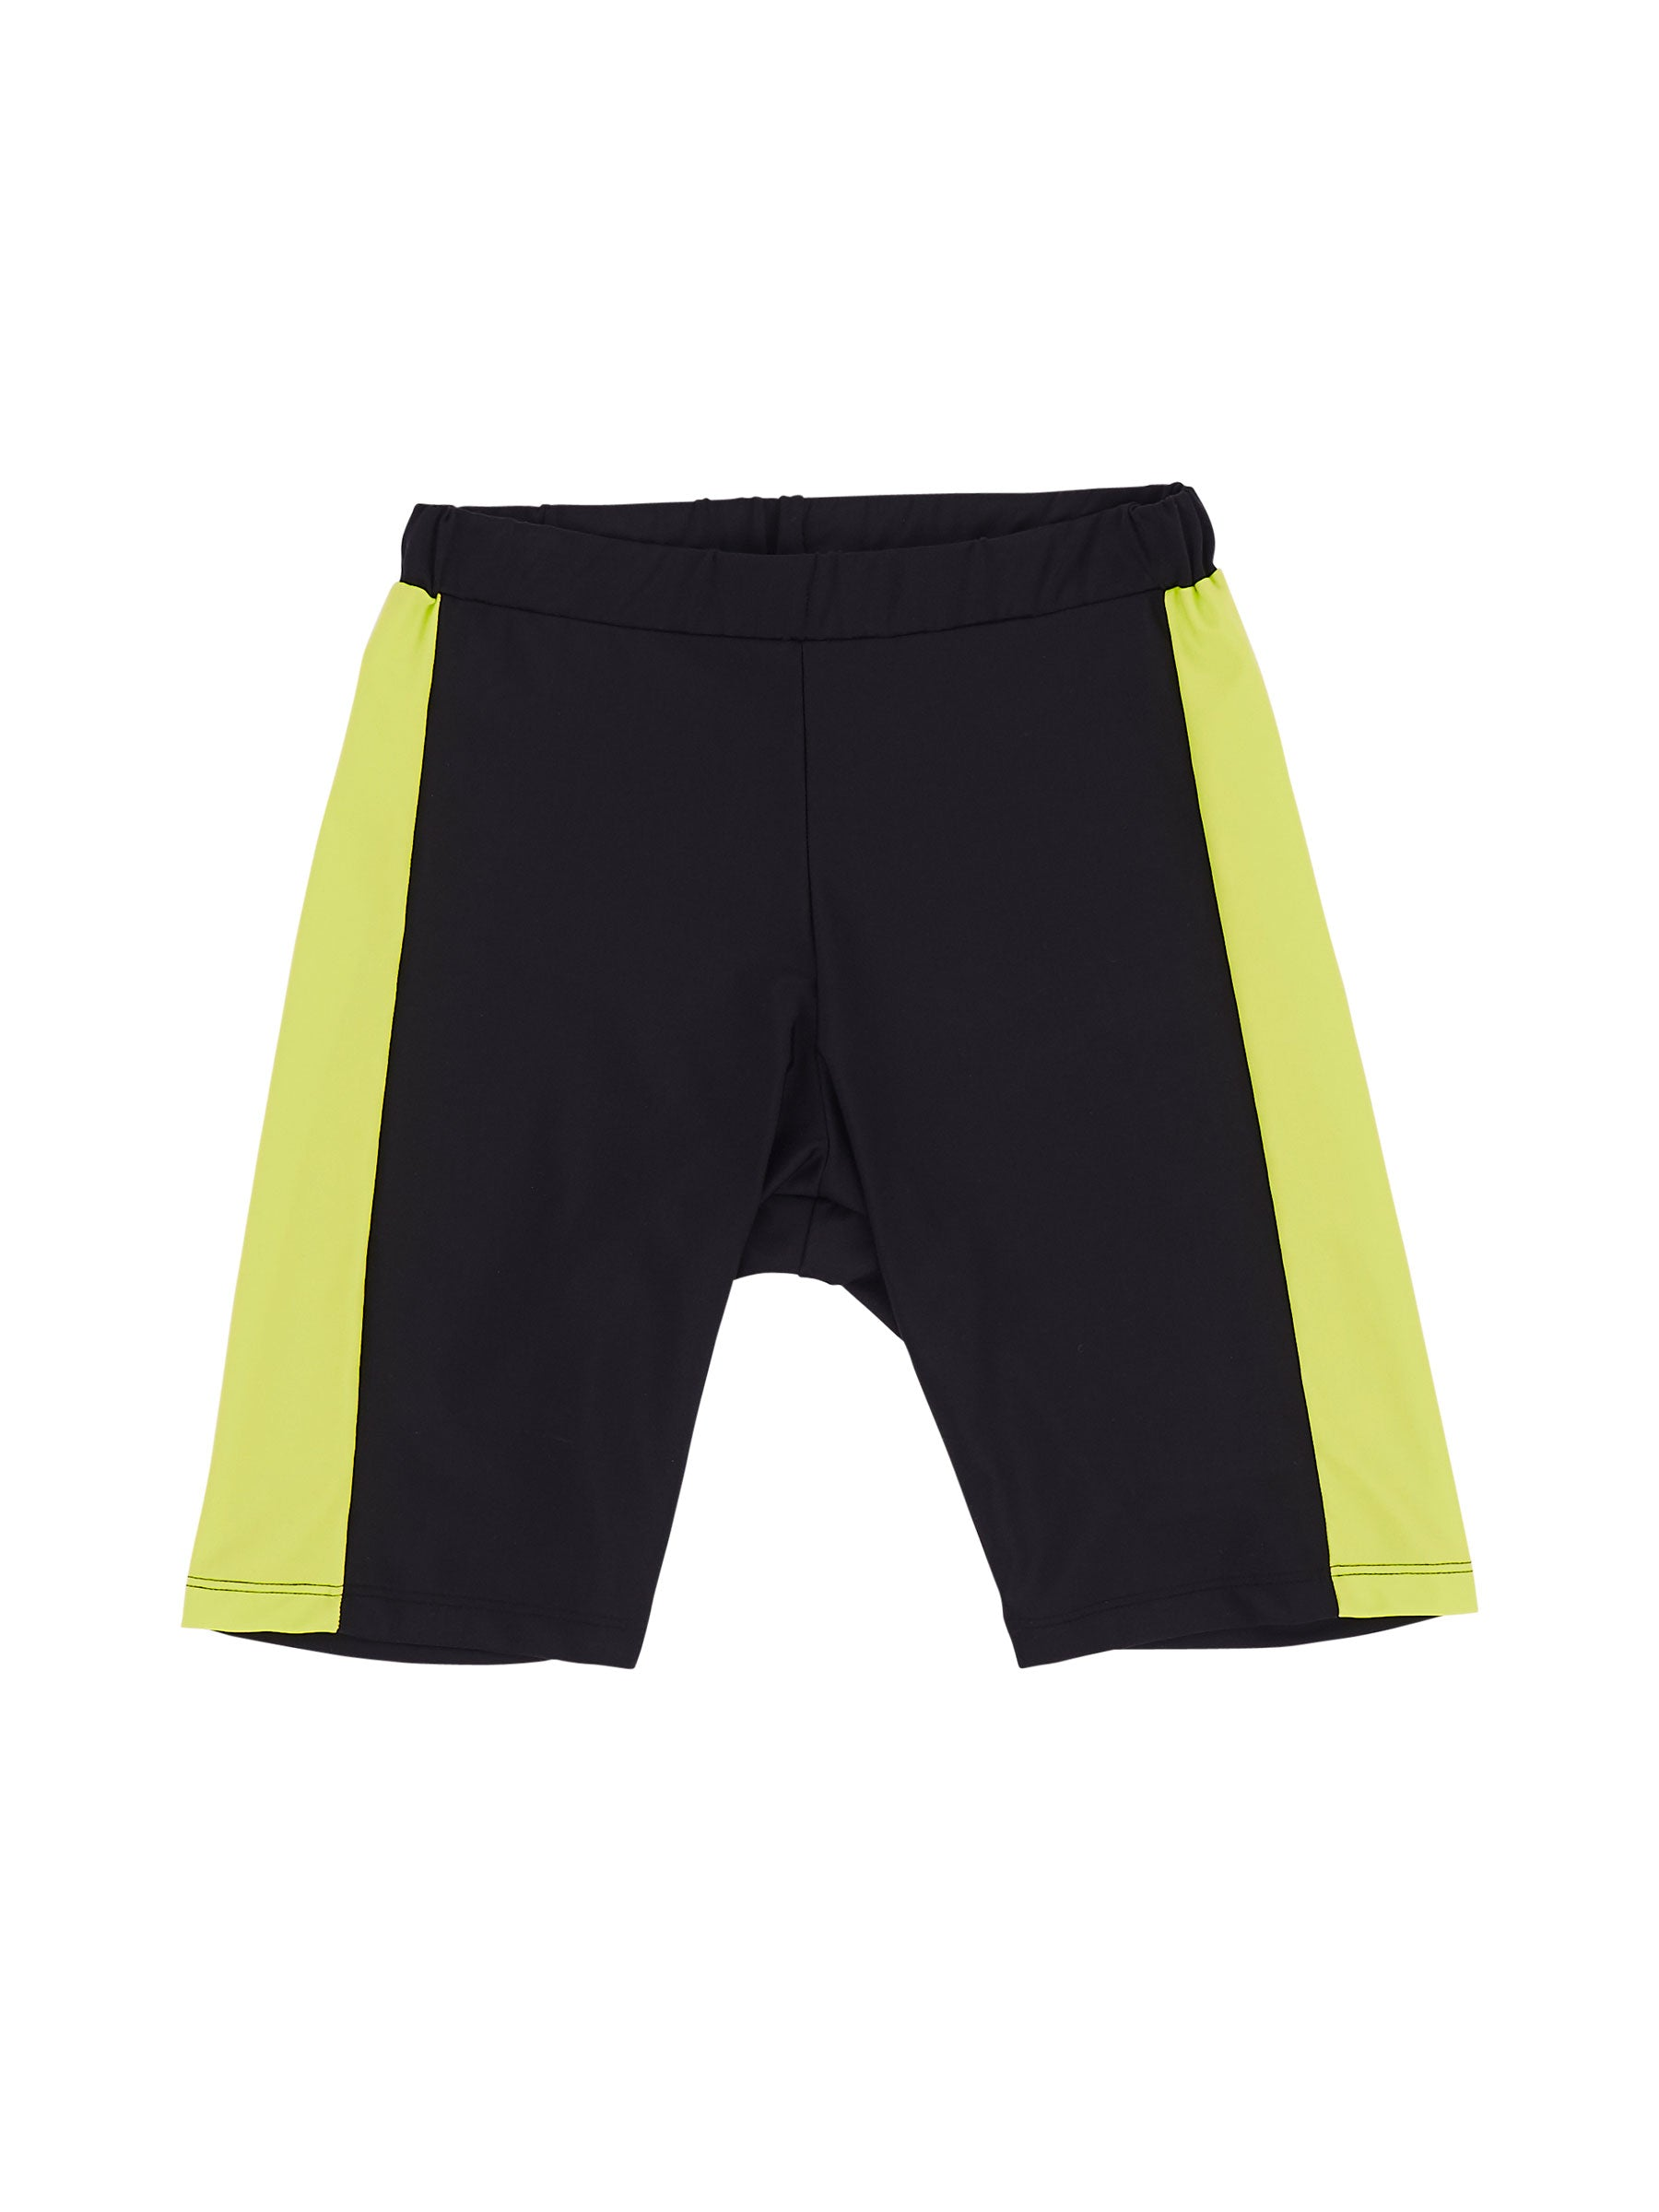 odd92 Fantabody Cycling Shorts Spring/Summer 2019 Womenswear - 1